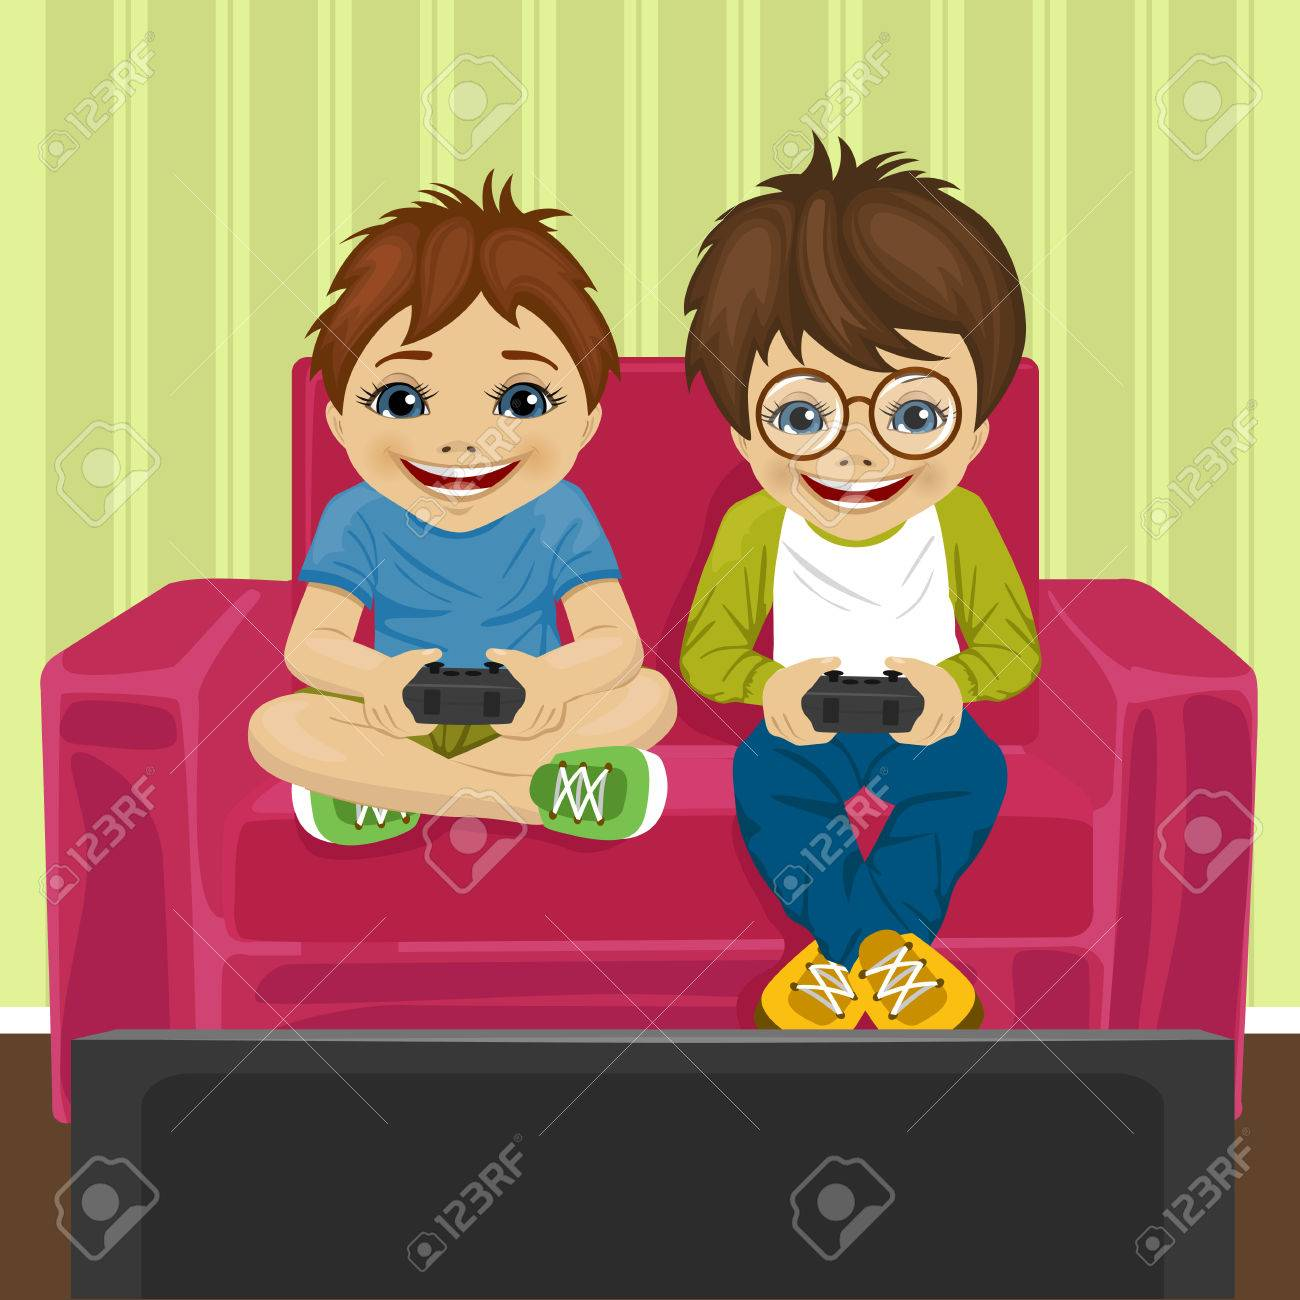 Friends Playing Video Game At Home Sitting On Sofa Royalty Free